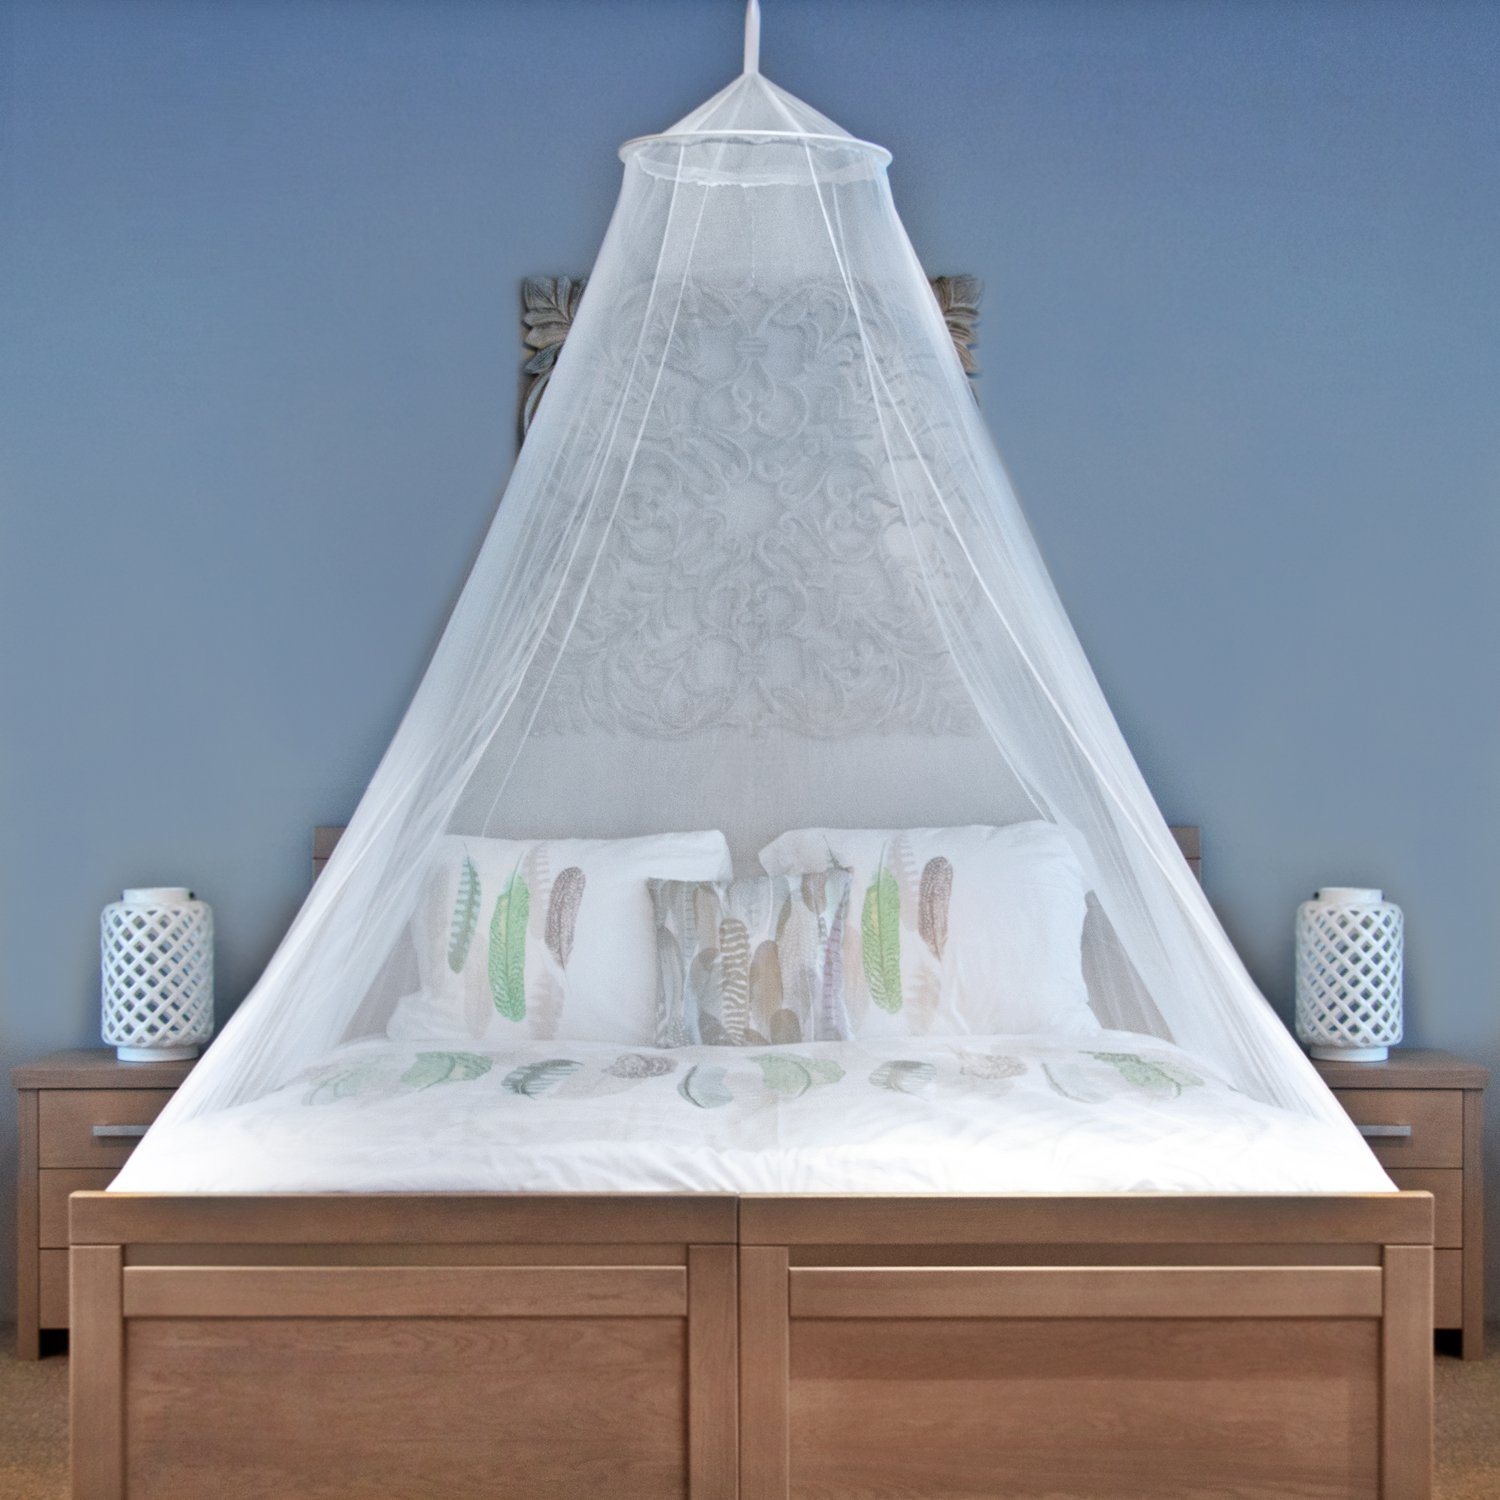 Mosquito NET for Single to King Size Beds - Quality Lightweight Materials, for Home and Travel - Easy to Carry & Setup with Free Travel Bag & Canopy Hanging Kit Universal Backpackers